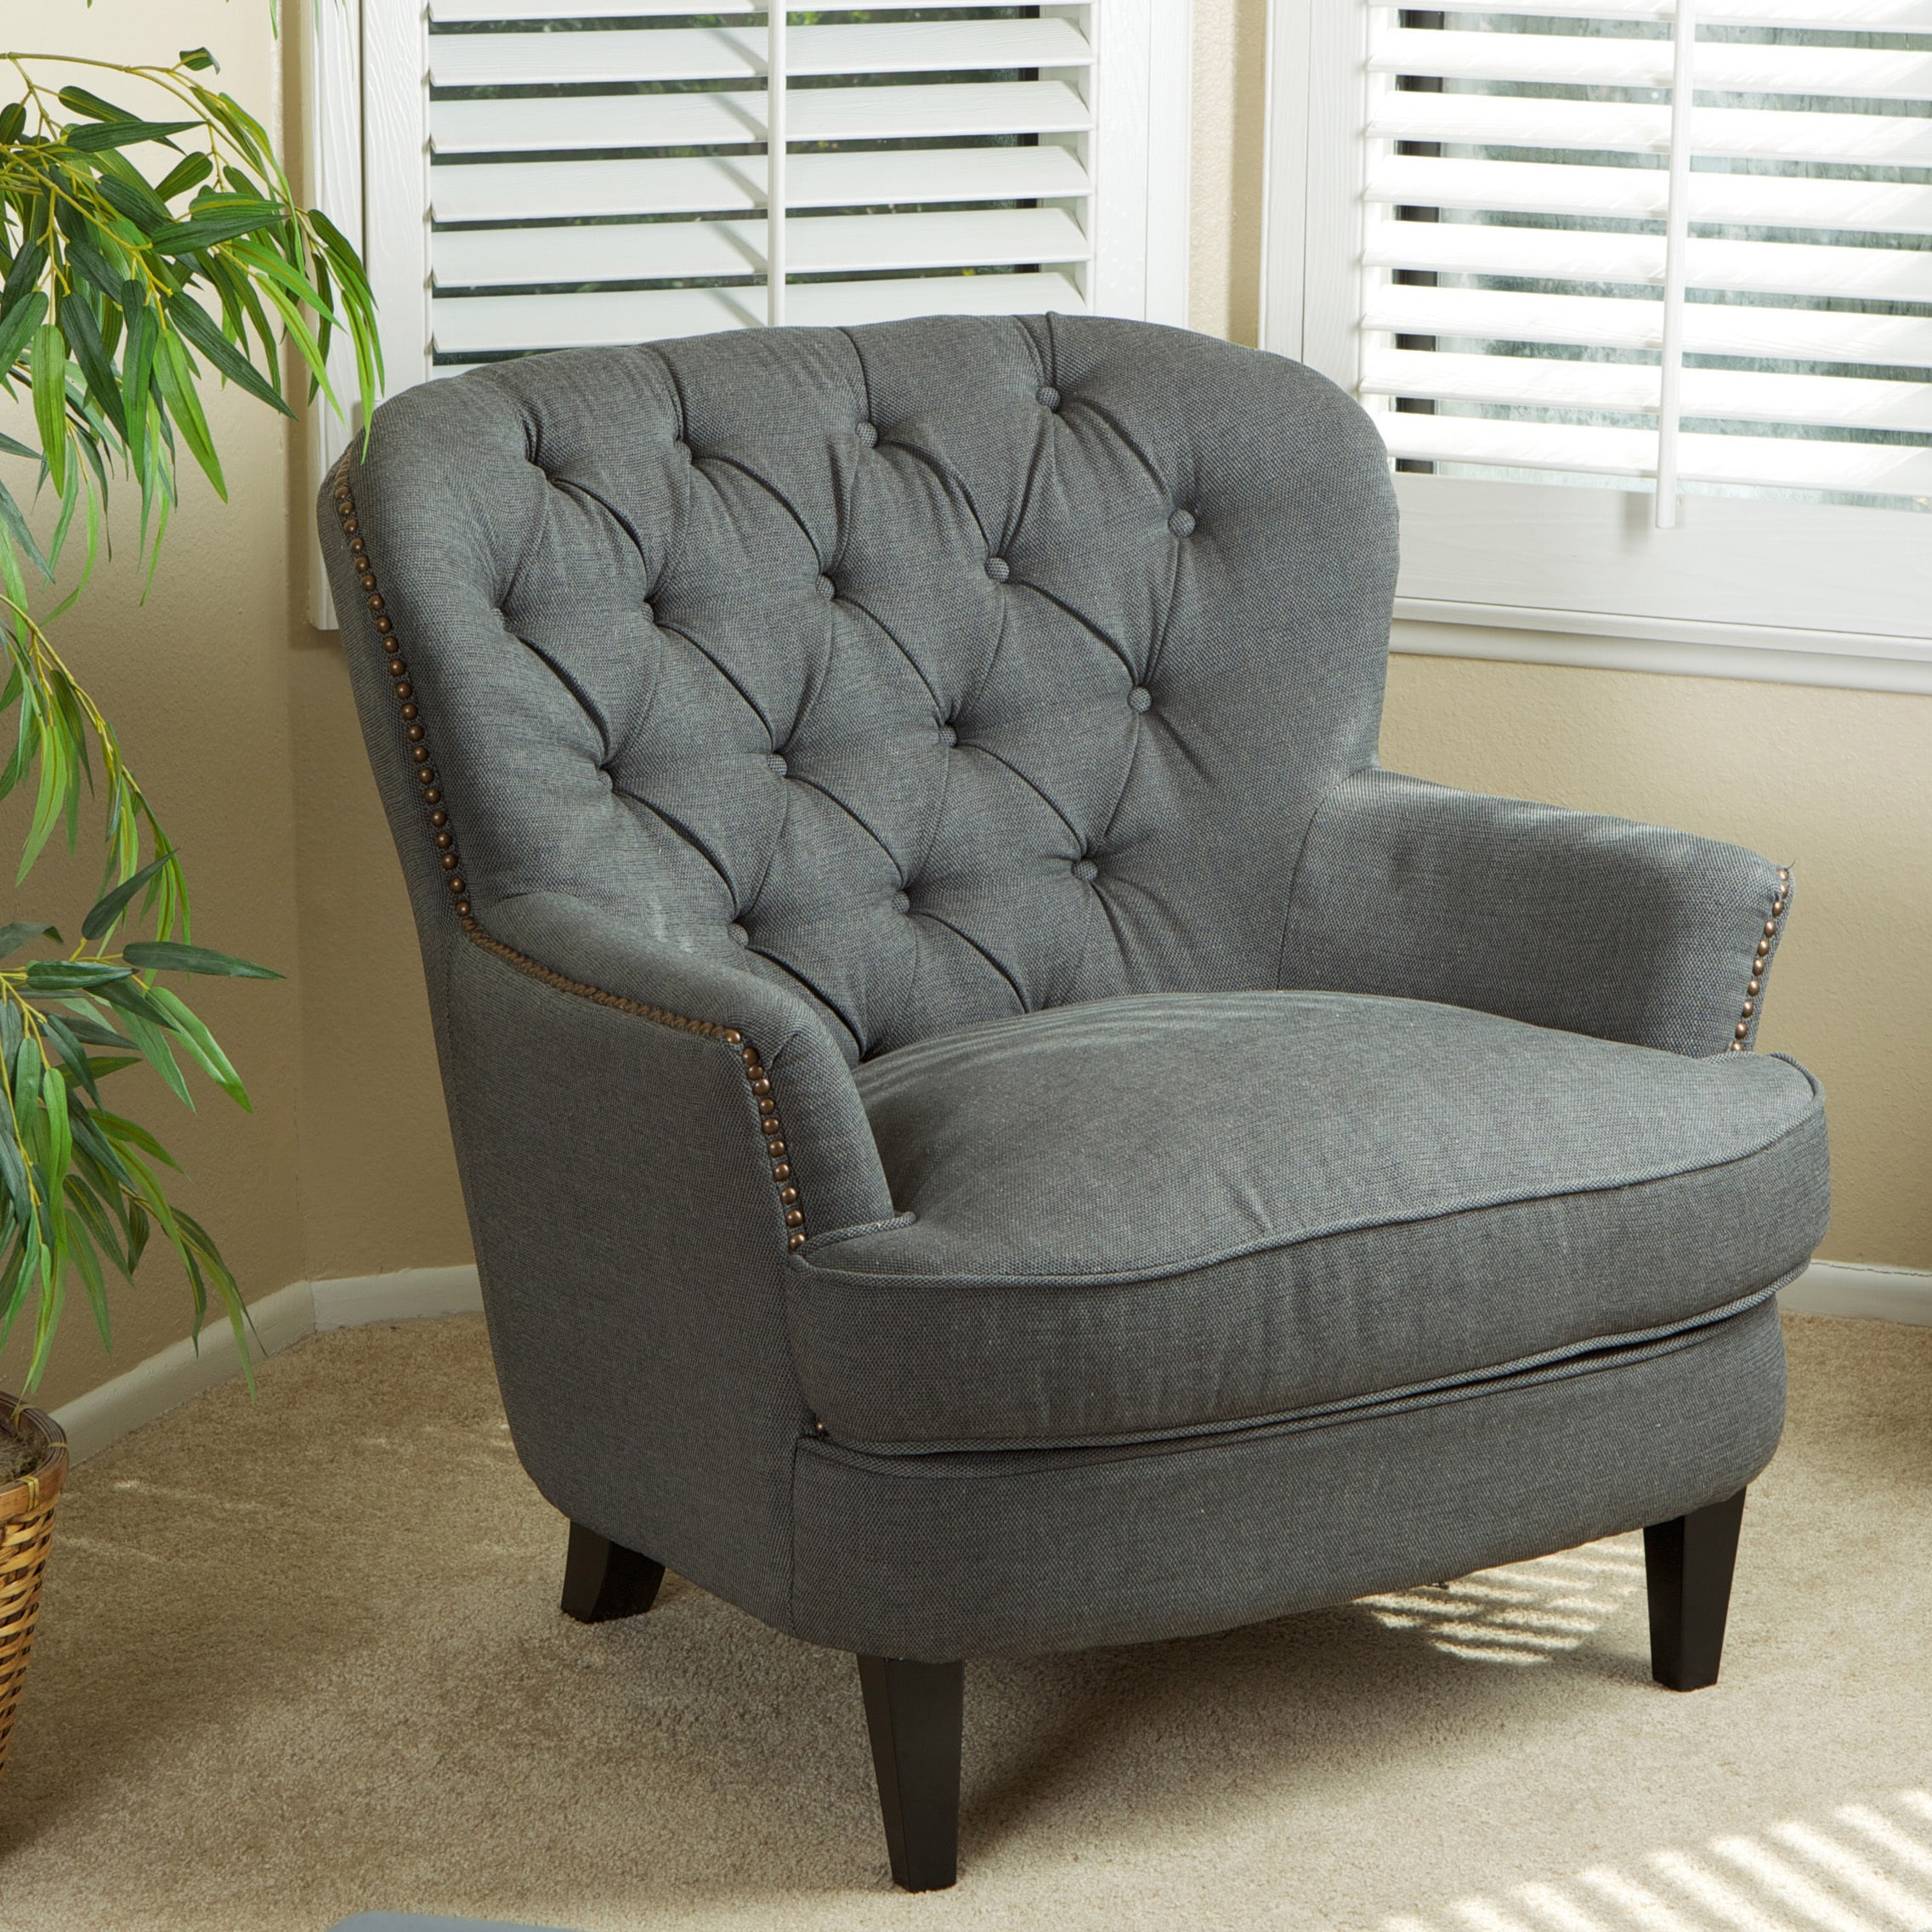 overstock com chairs all terrain electric wheelchair christopher knight home tafton tufted grey fabric club